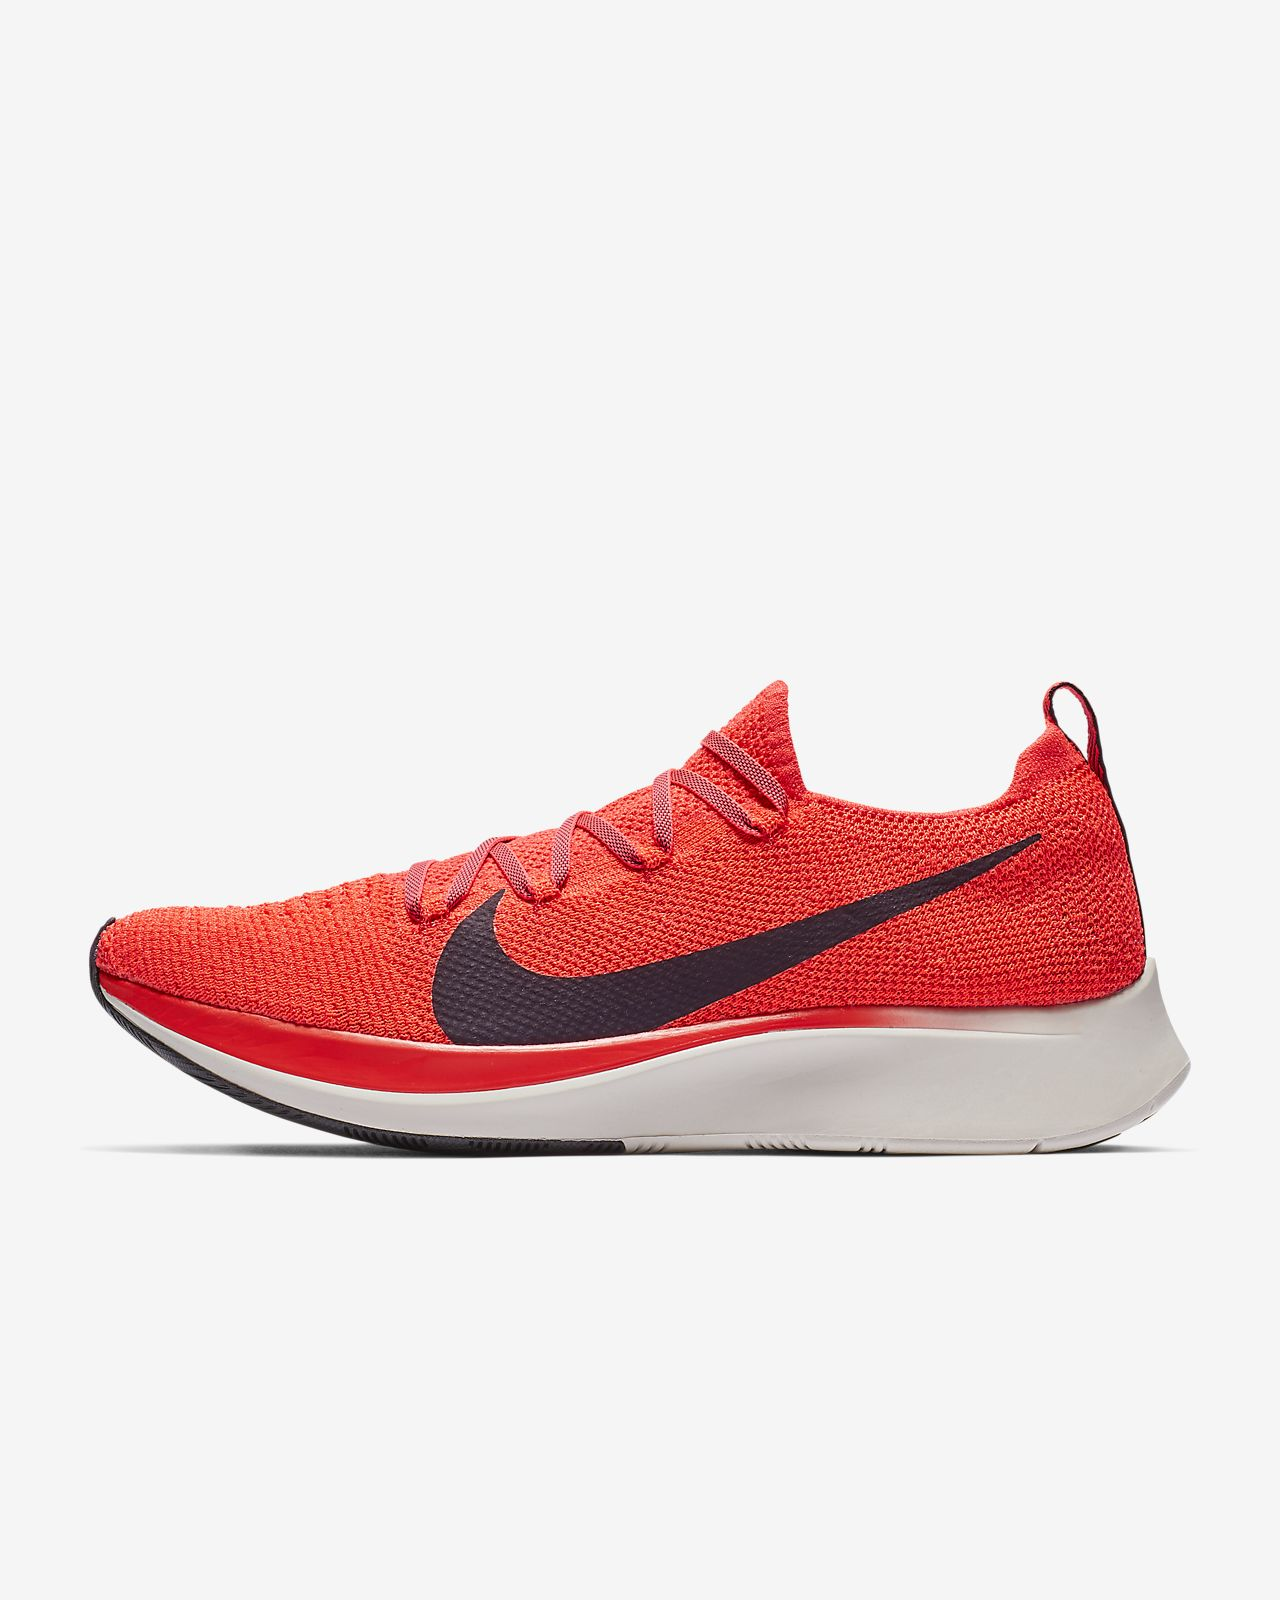 2ea43b8b0df9c Nike Zoom Fly Flyknit Men s Running Shoe. Nike.com